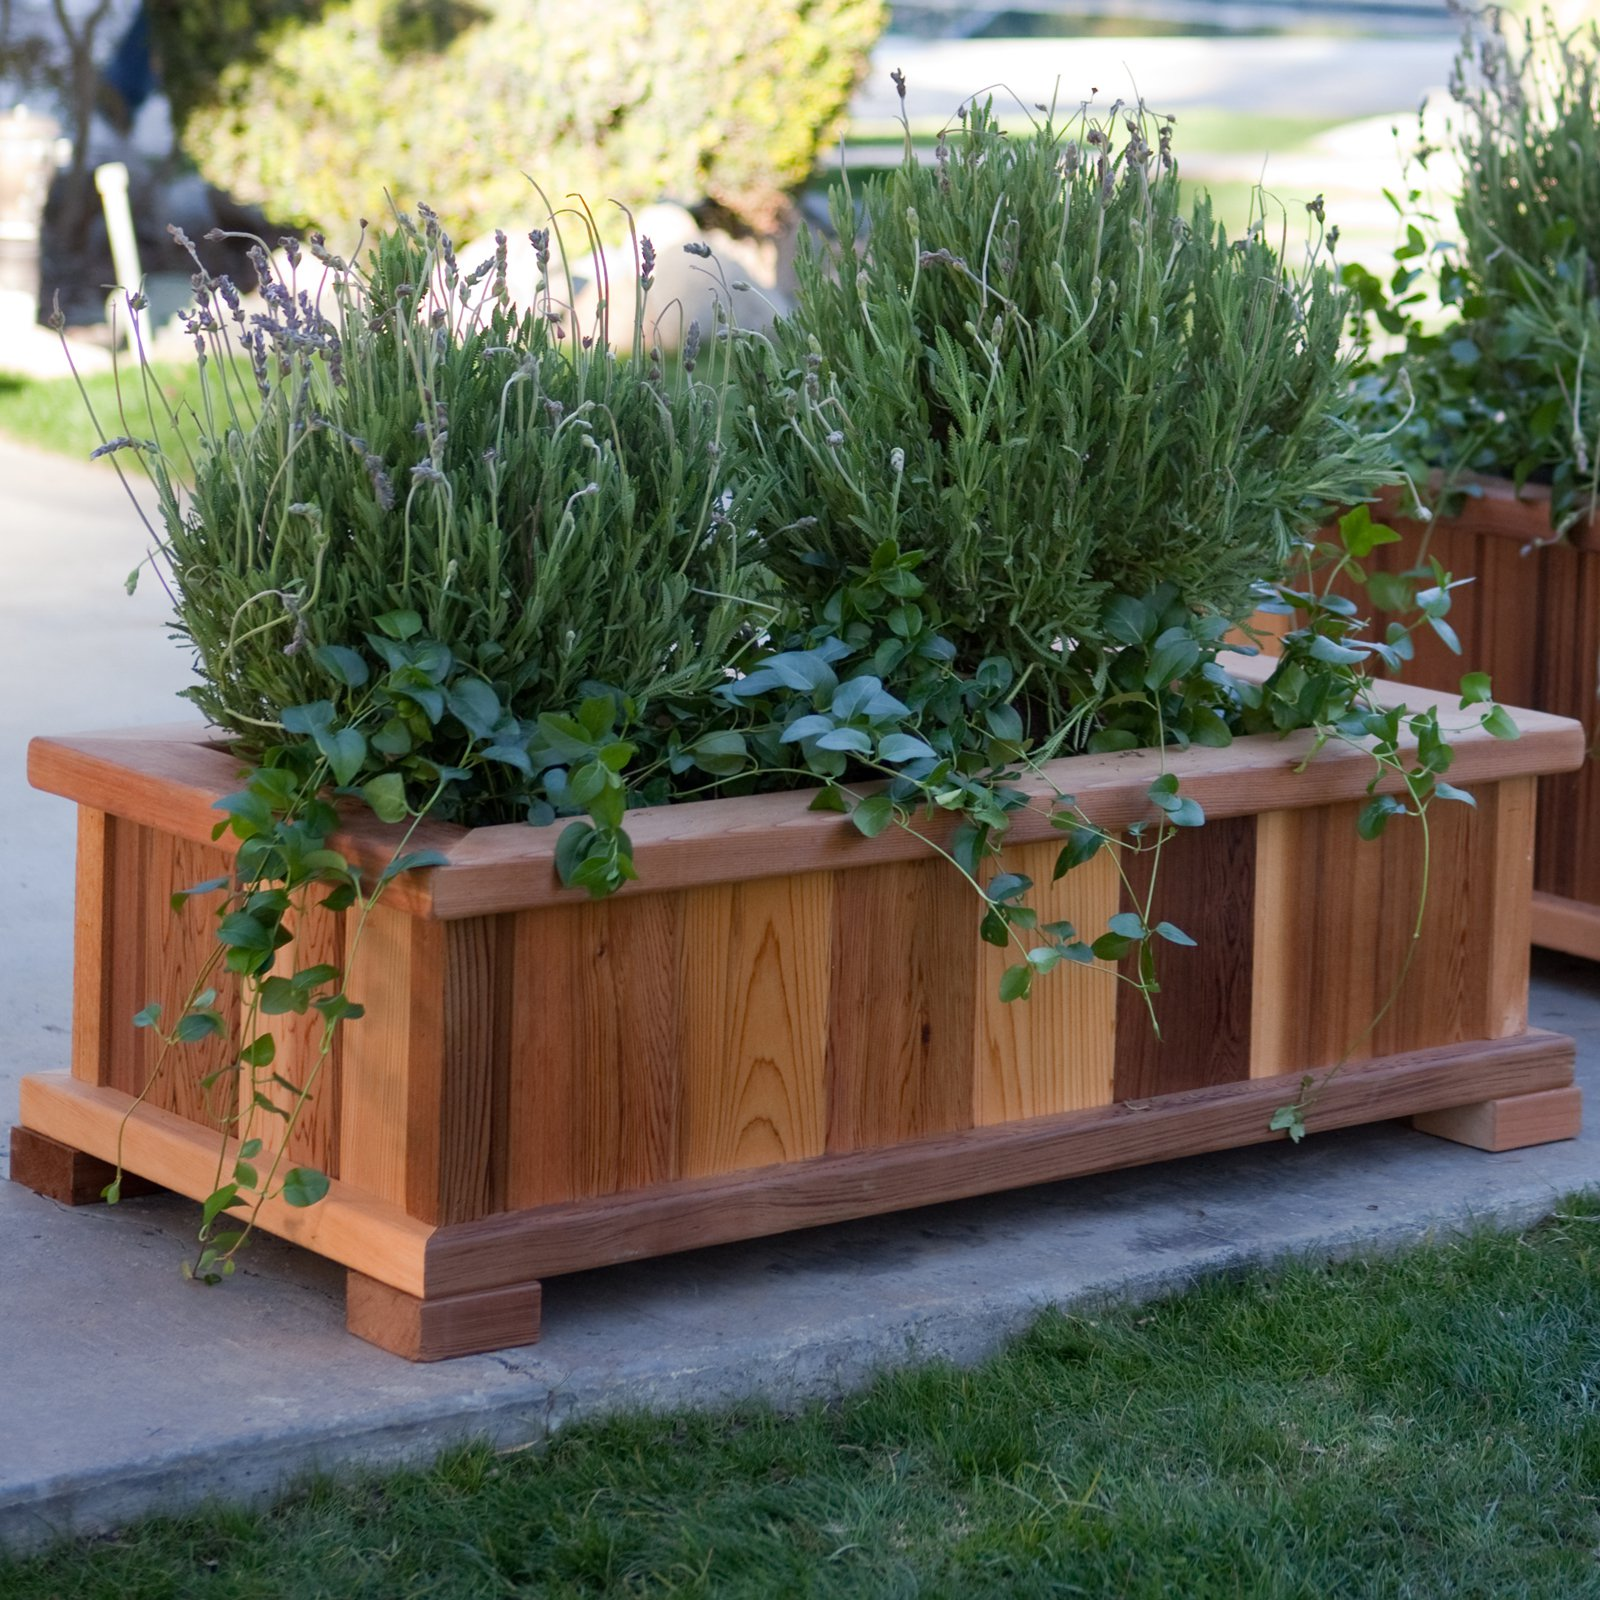 Wood country rectangle cedar wood boise patio planter box walmart com